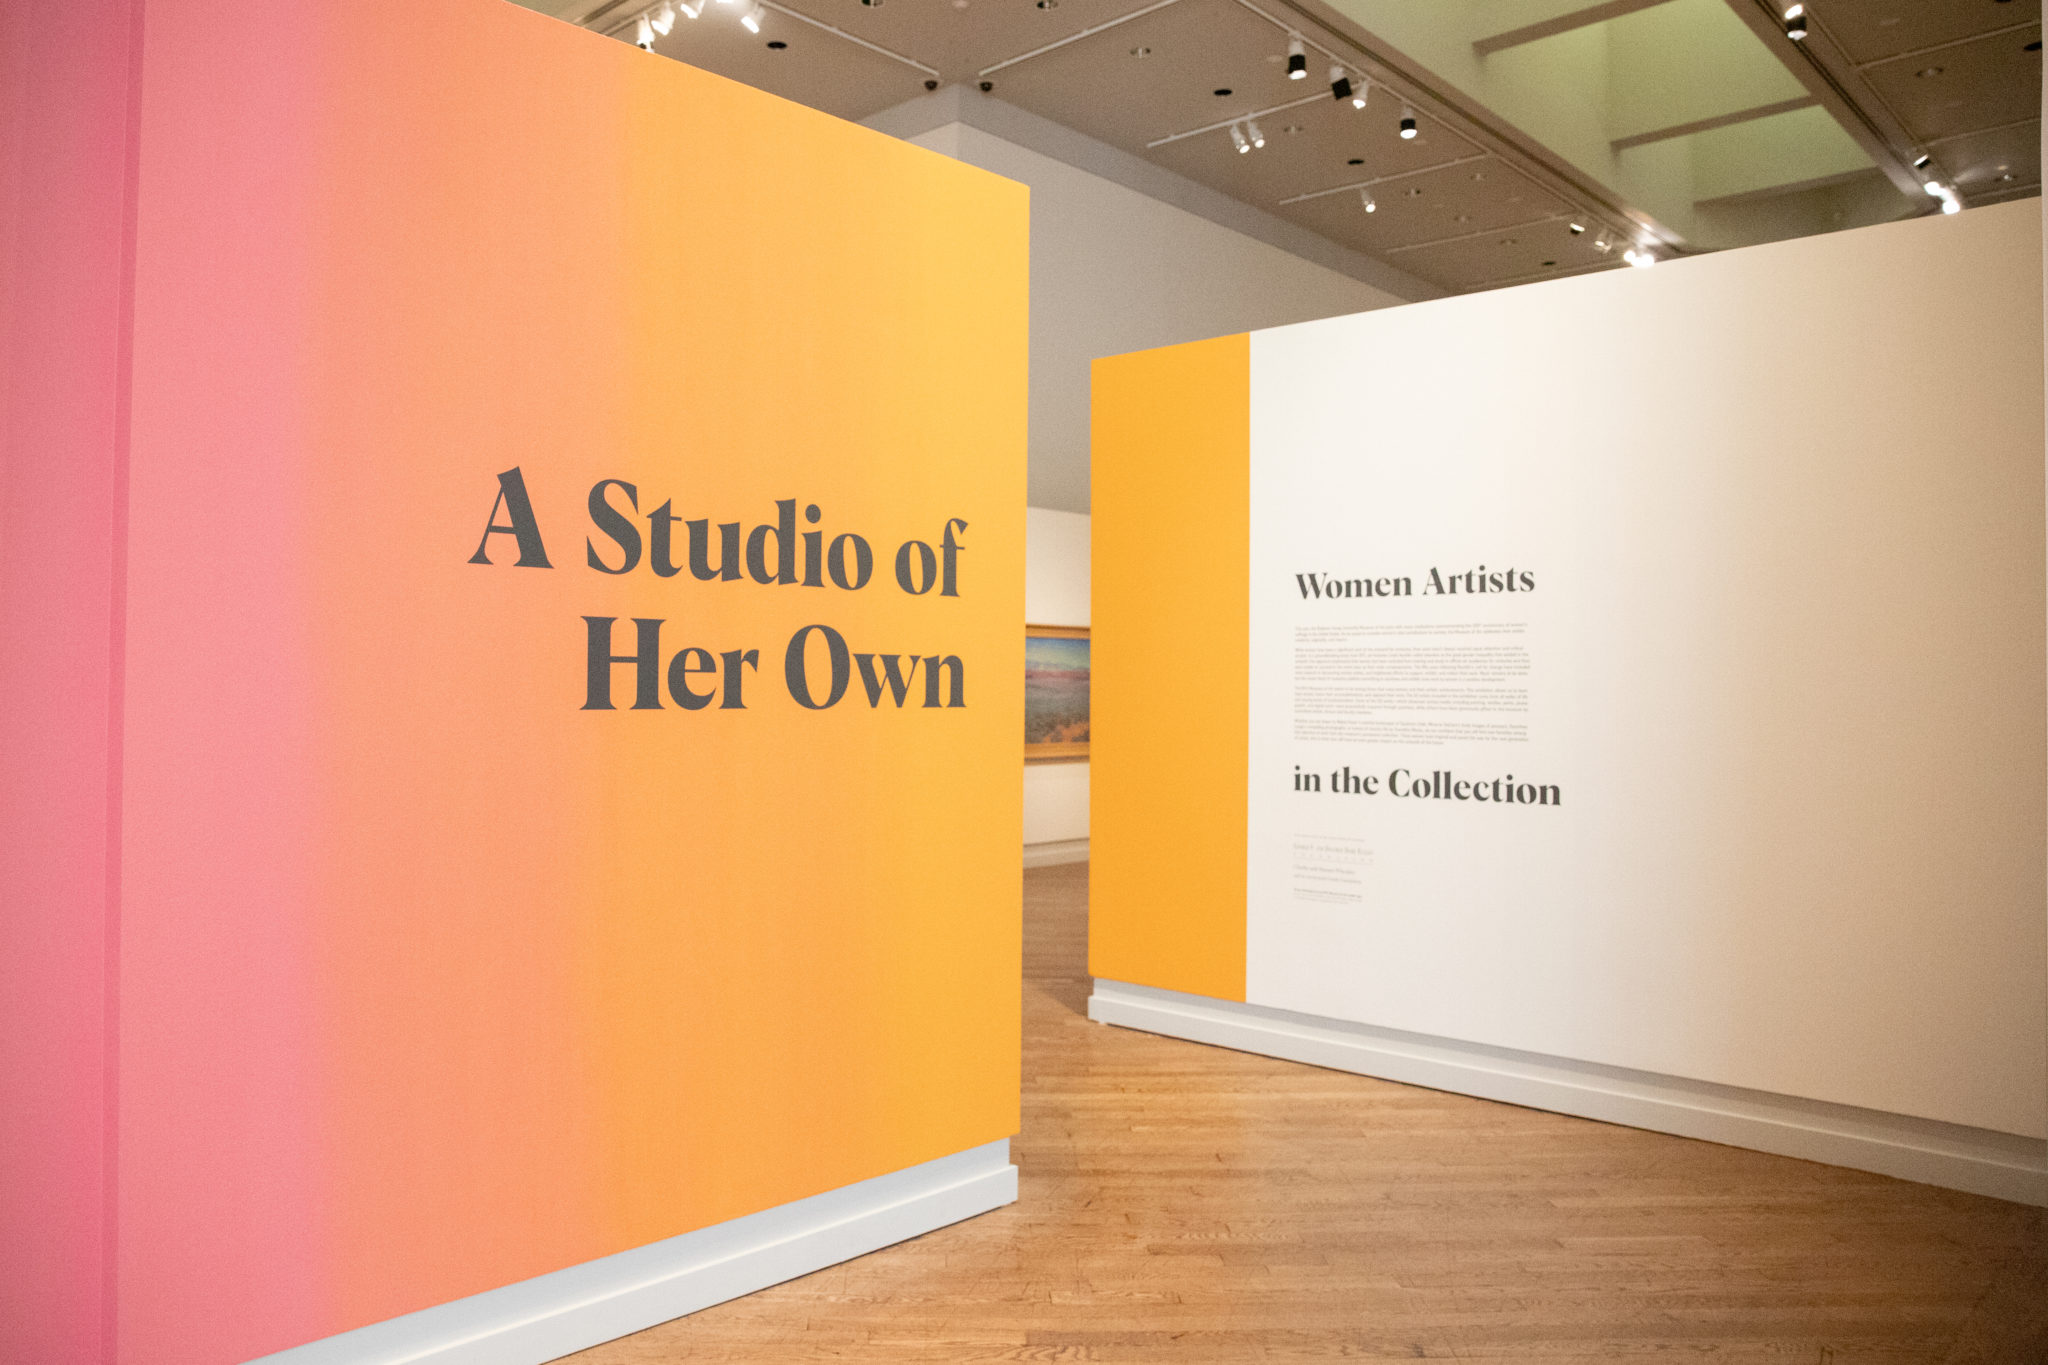 Closing this week, 'A Studio of Her Own' exhibit features powerful lessons for 2020